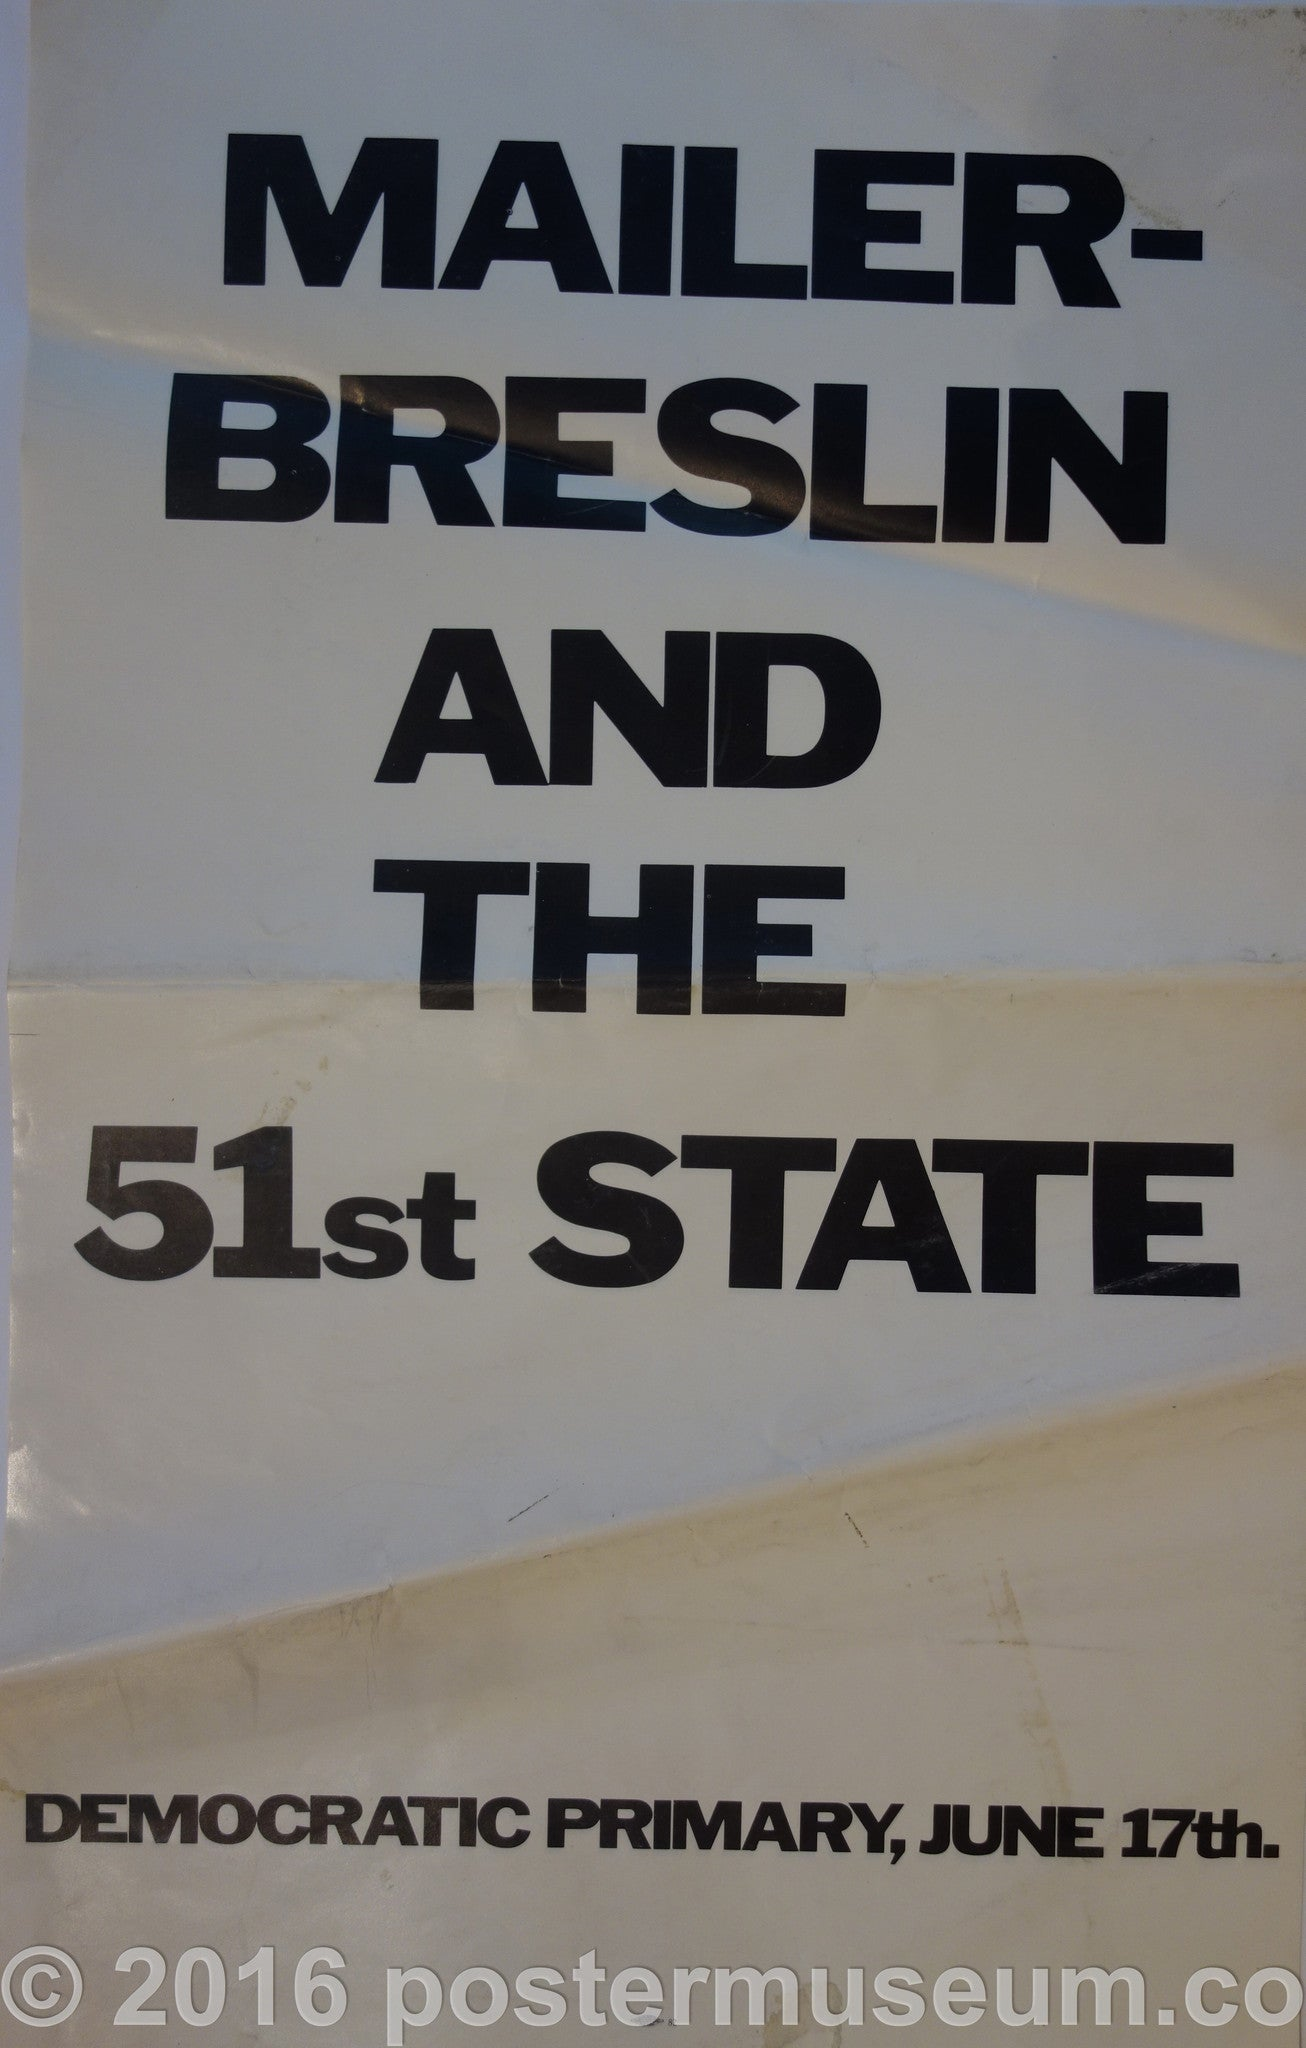 Mailer-Breslin And The 51st State